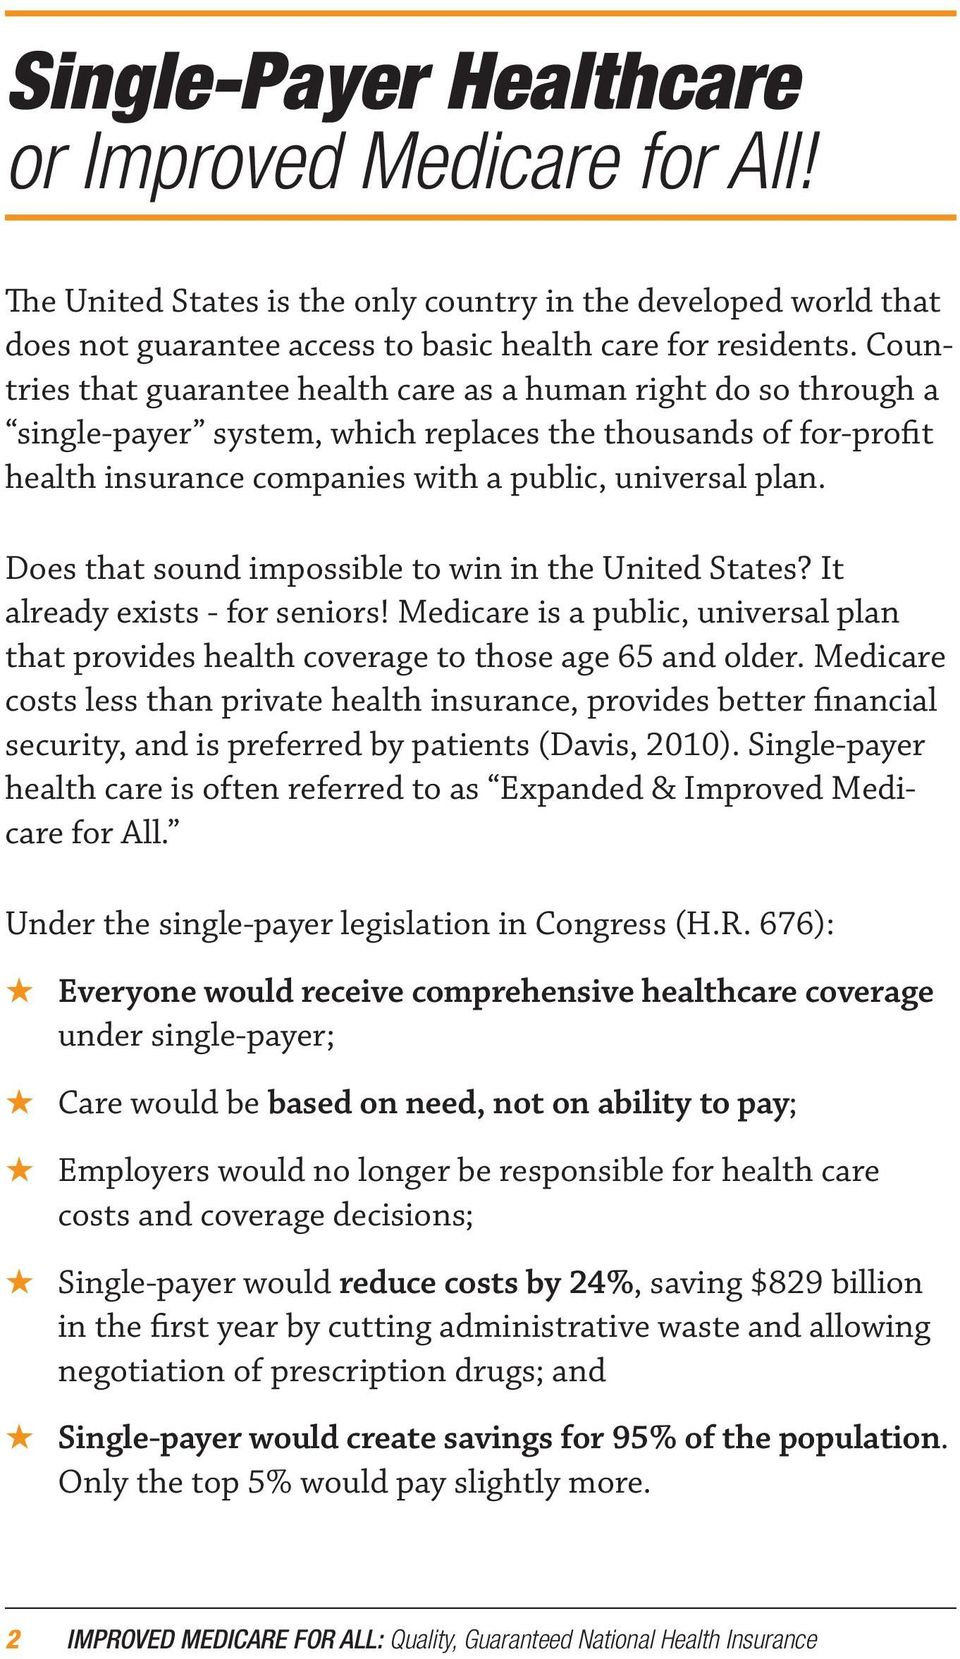 Does that sound impossible to win in the United States? It already exists - for seniors! Medicare is a public, universal plan that provides health coverage to those age 65 and older.